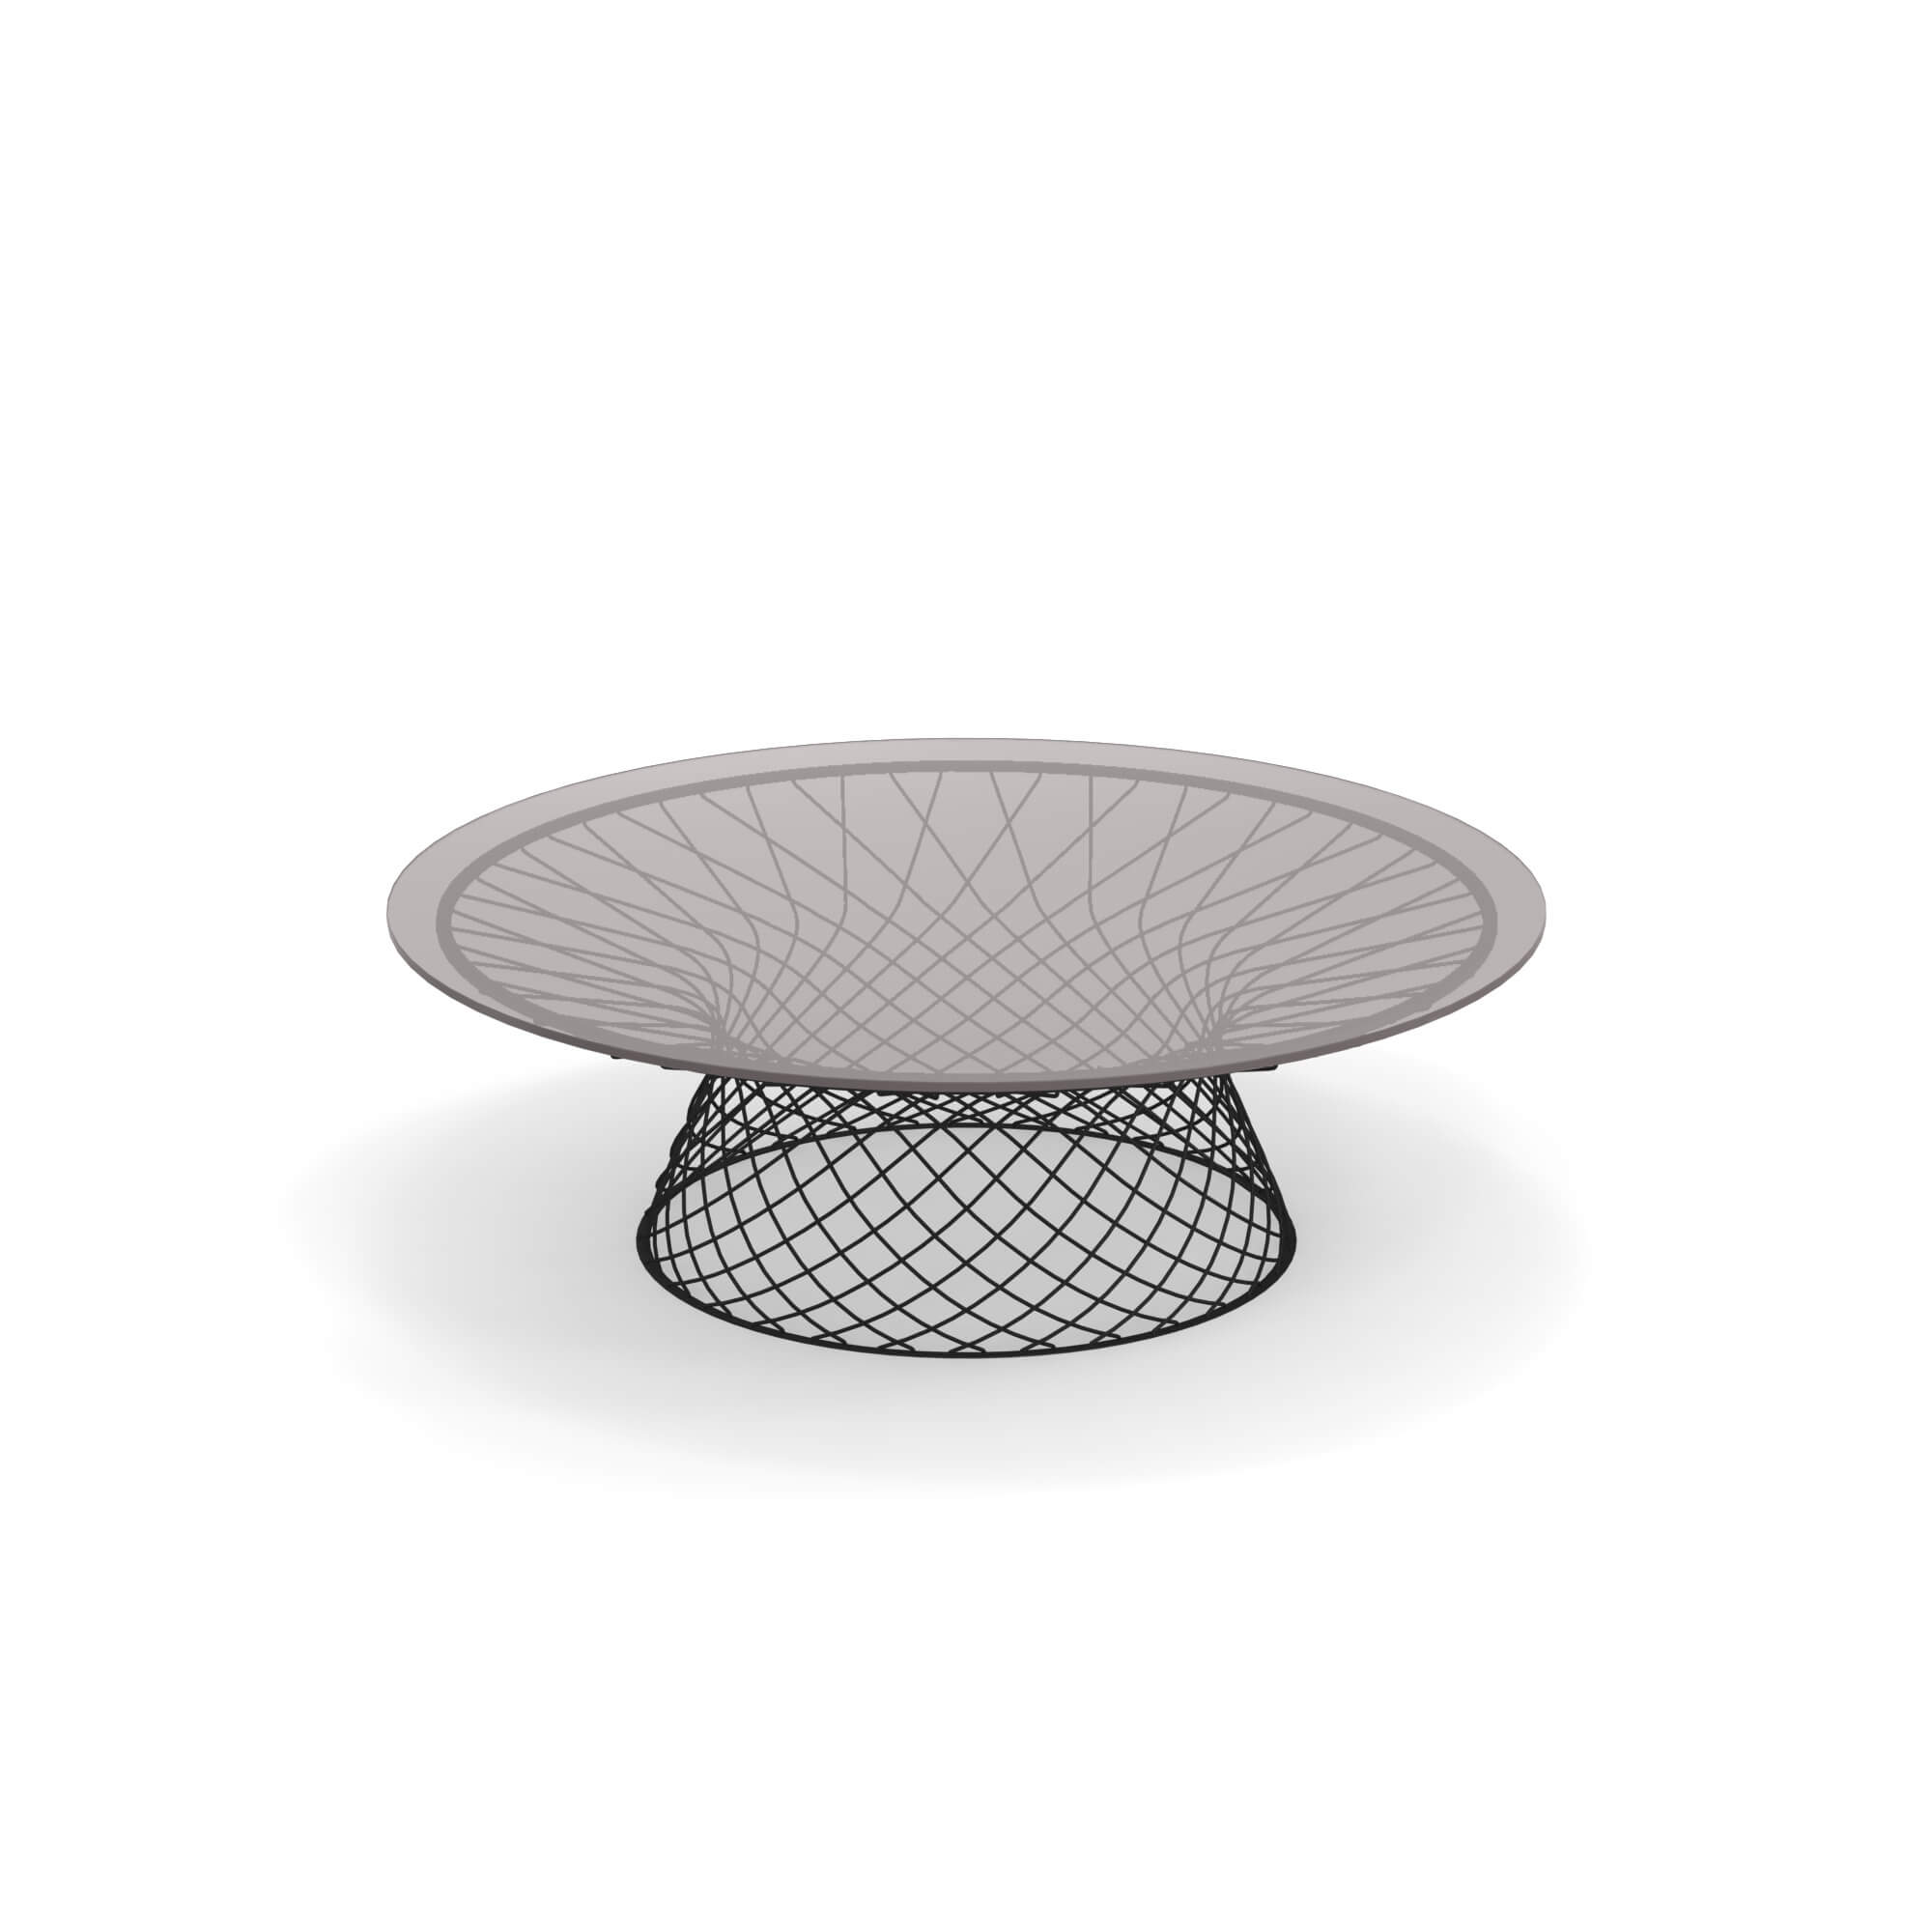 Garden Coffee Table O120 Outside In Steel Tempered Glass Collection Heaven [ 2000 x 2000 Pixel ]